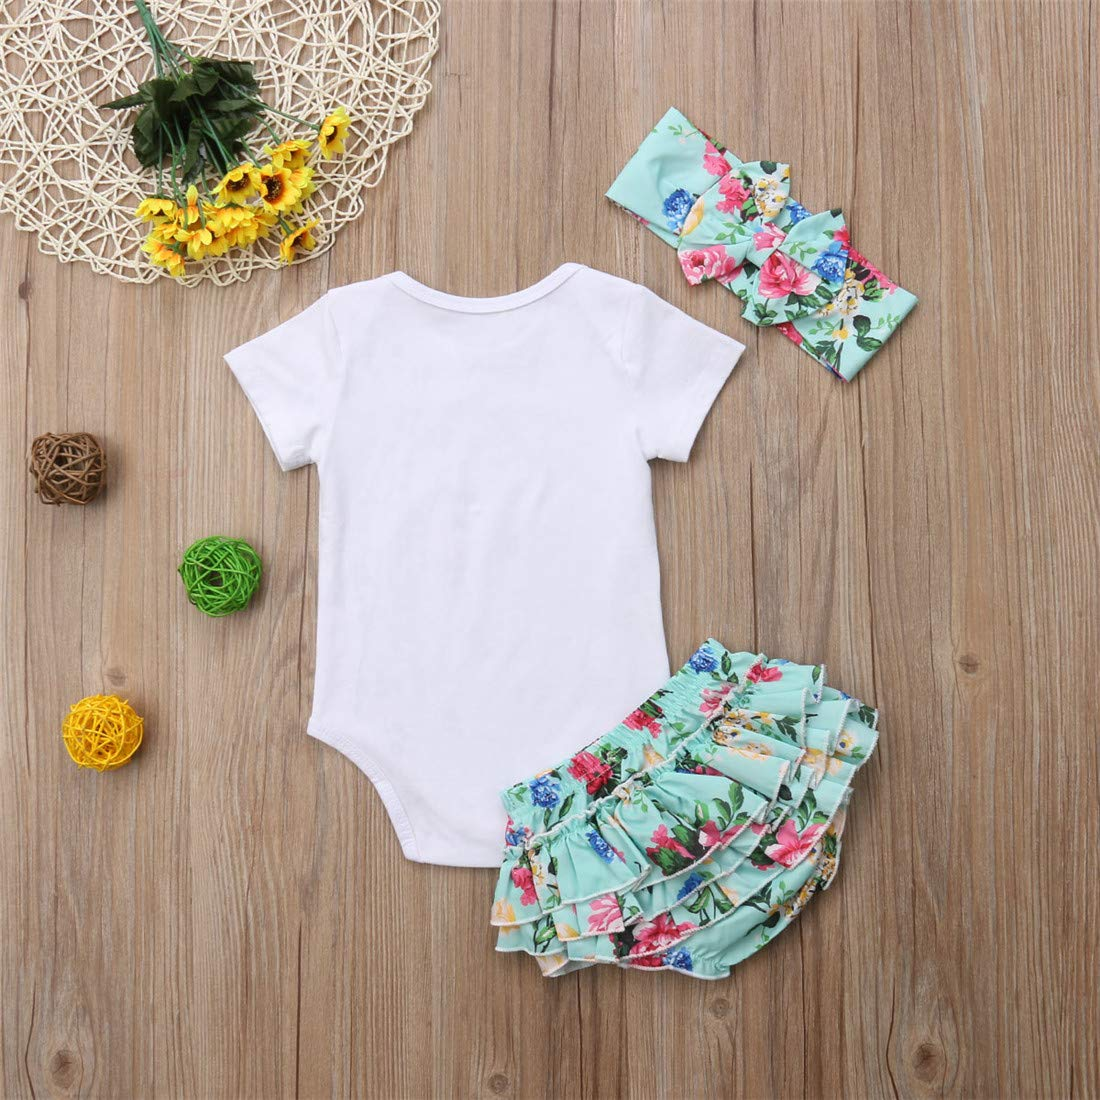 Headband Pants Set Ruffle Shorts Eyiou Newborn Rompers Baby Girls Clothes Infant 3PCS Bodysuit